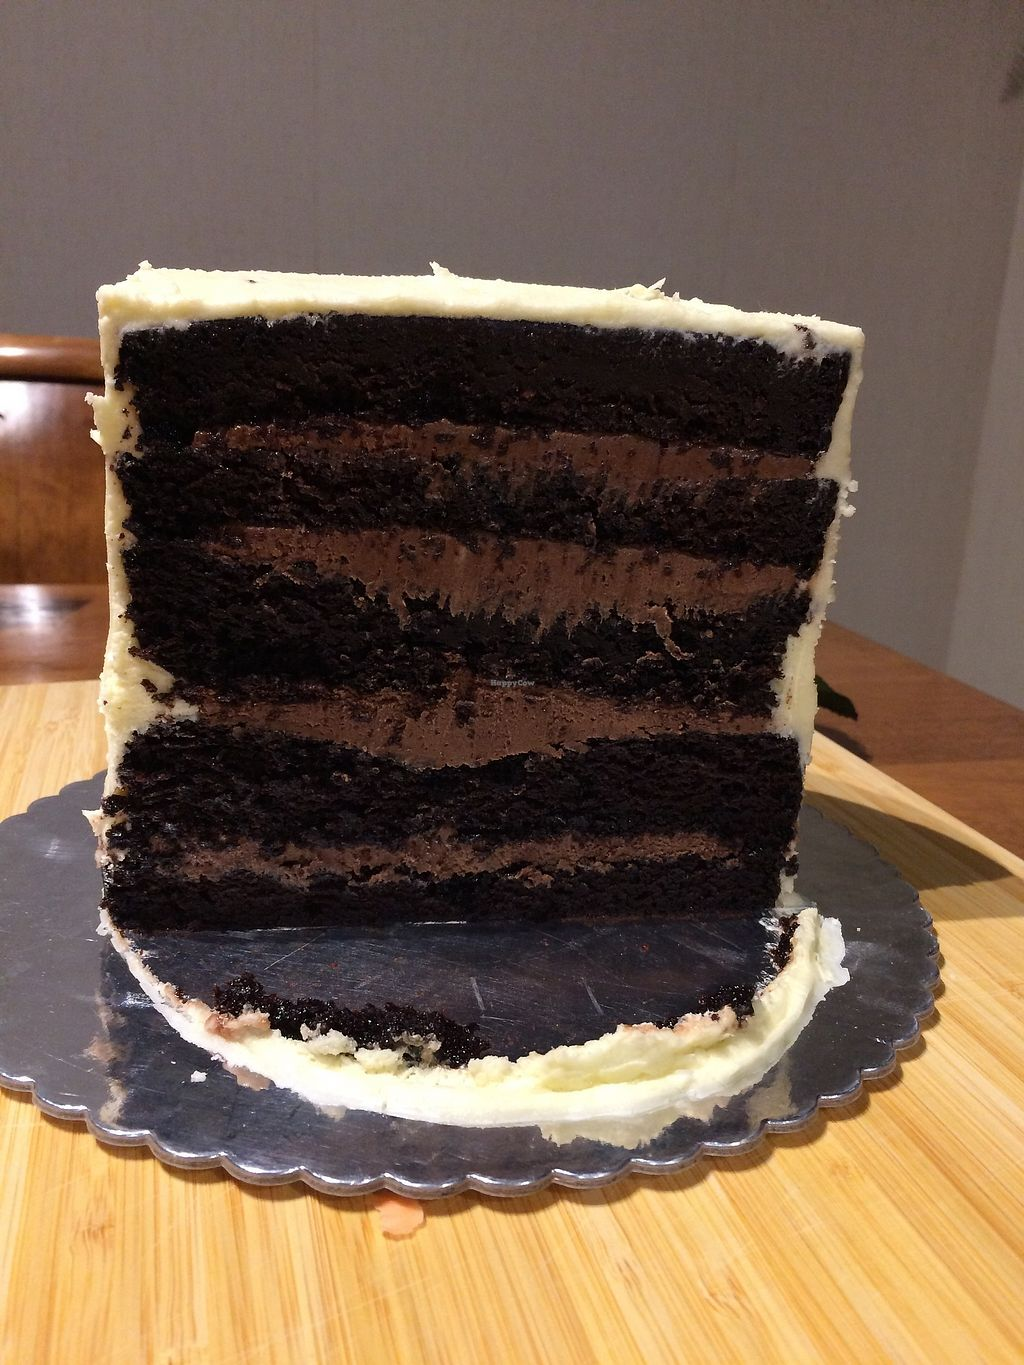 """Photo of Temptation Cakes  by <a href=""""/members/profile/Kateylion"""">Kateylion</a> <br/>Yum!! <br/> September 30, 2017  - <a href='/contact/abuse/image/101196/309973'>Report</a>"""